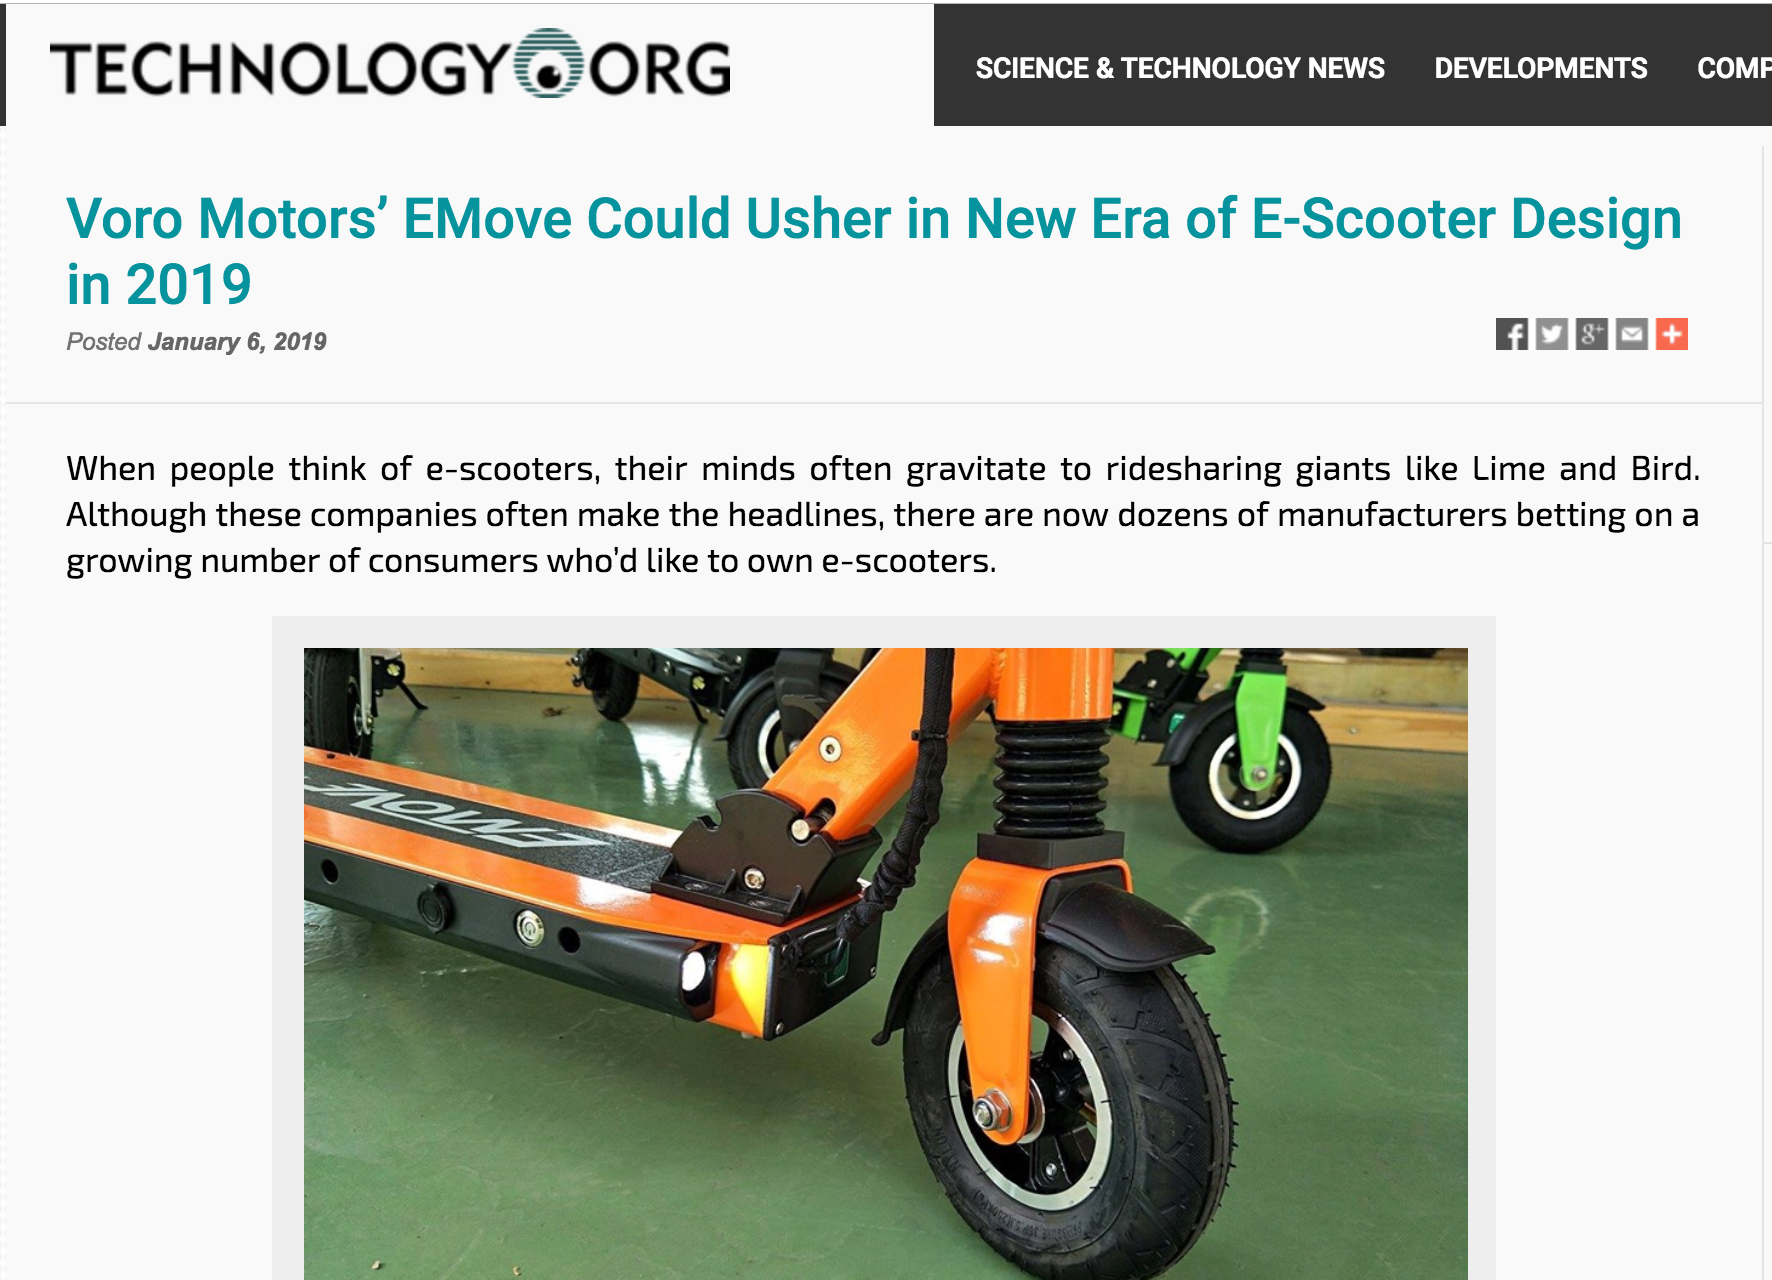 Technology.org EMOVE Scooters